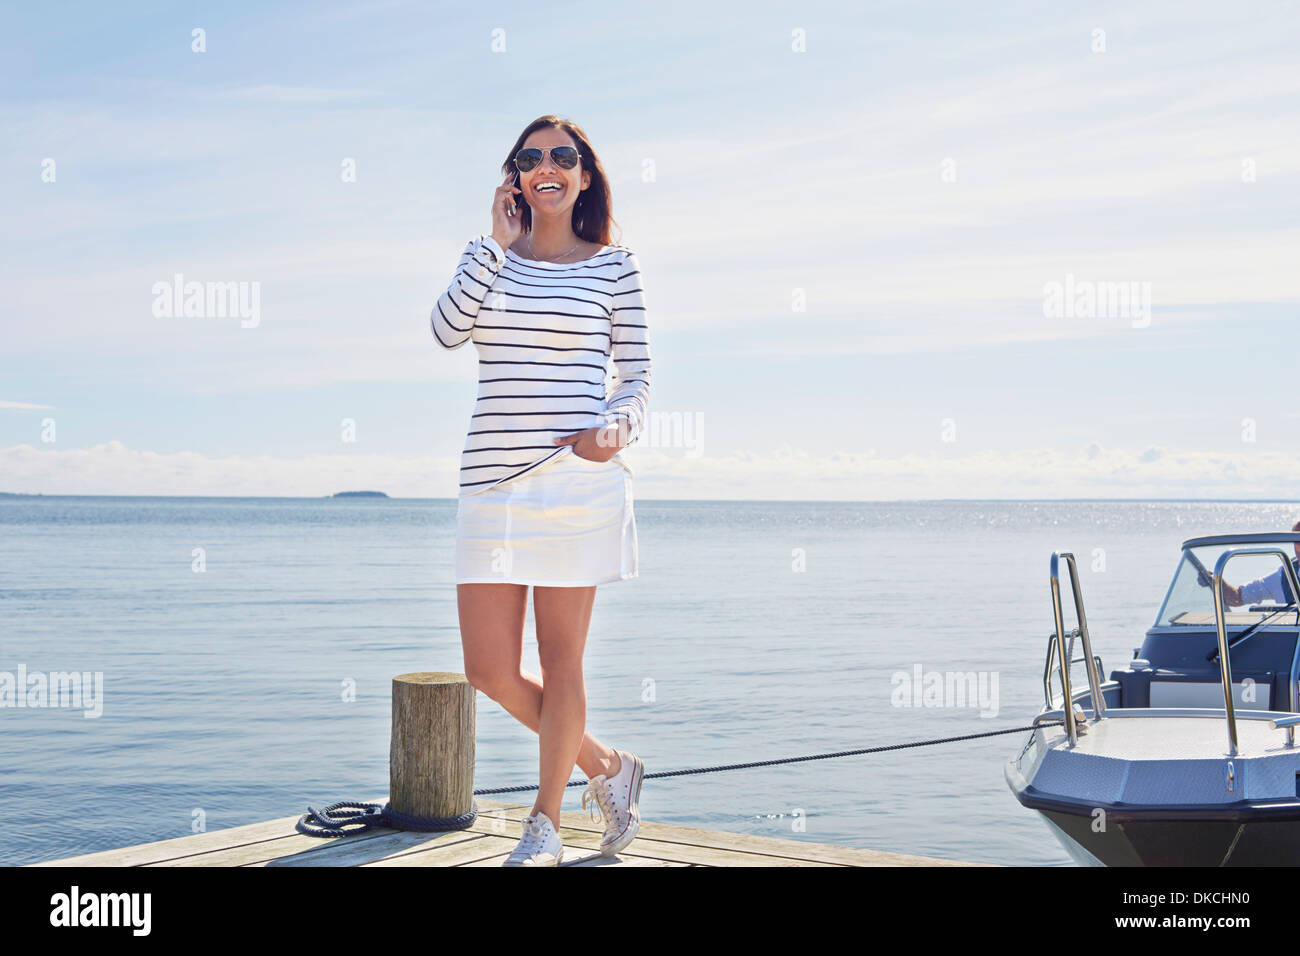 Young woman on cell phone on pier, Gavle, Sweden - Stock Image